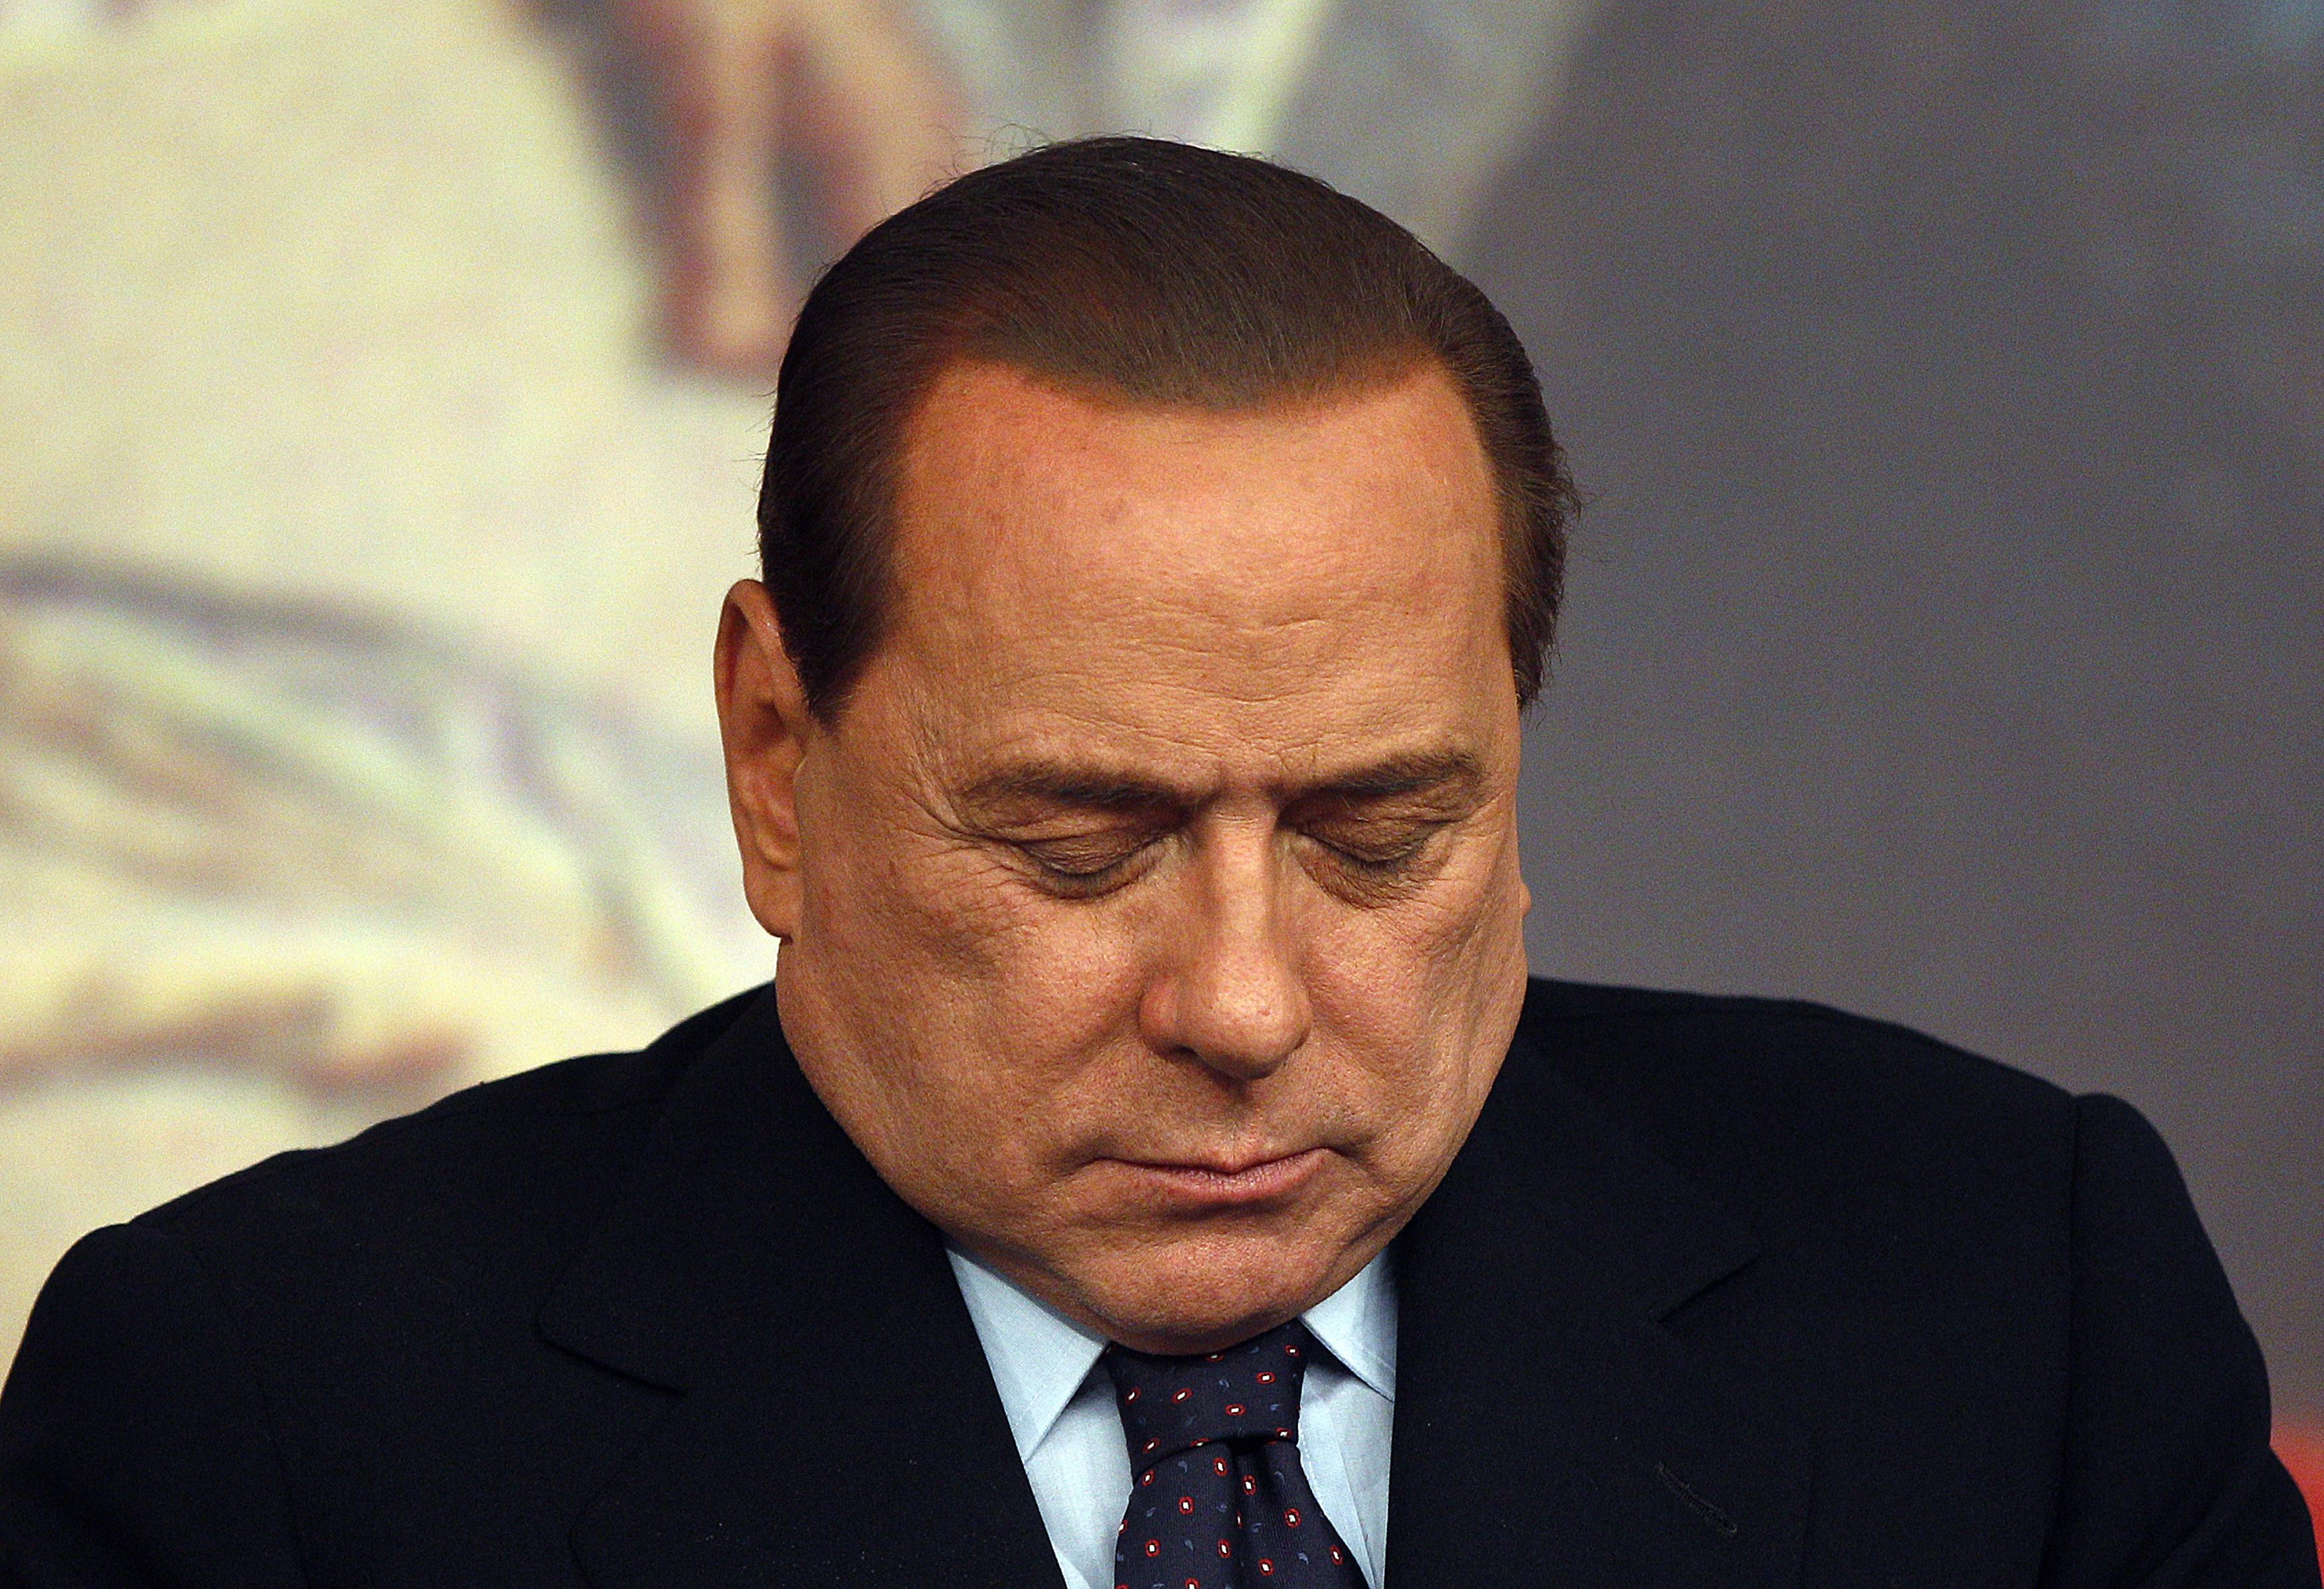 Berlusconi sleeping with head in hands